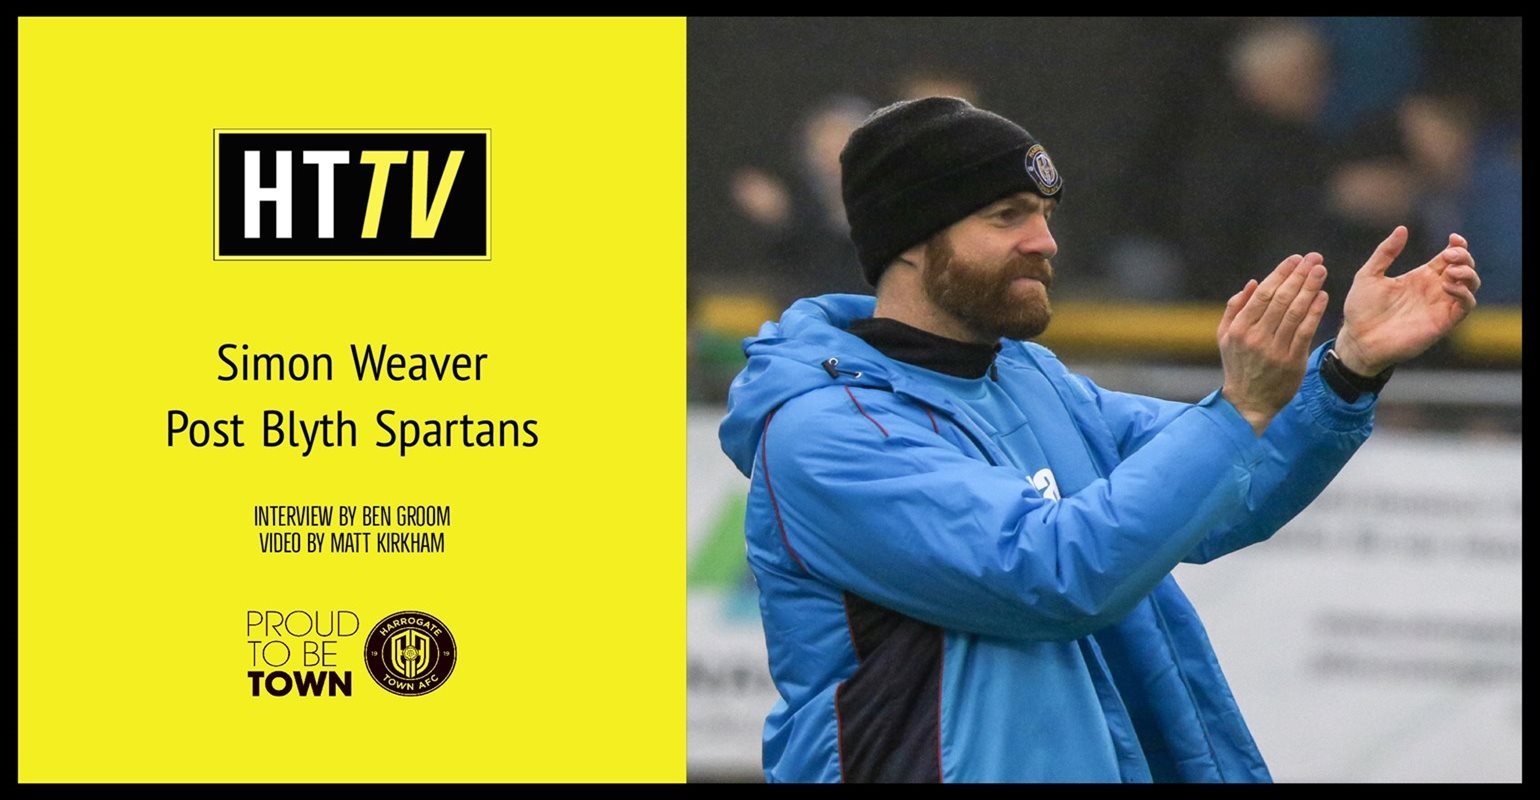 HTTV | Simon Weaver Post Blyth